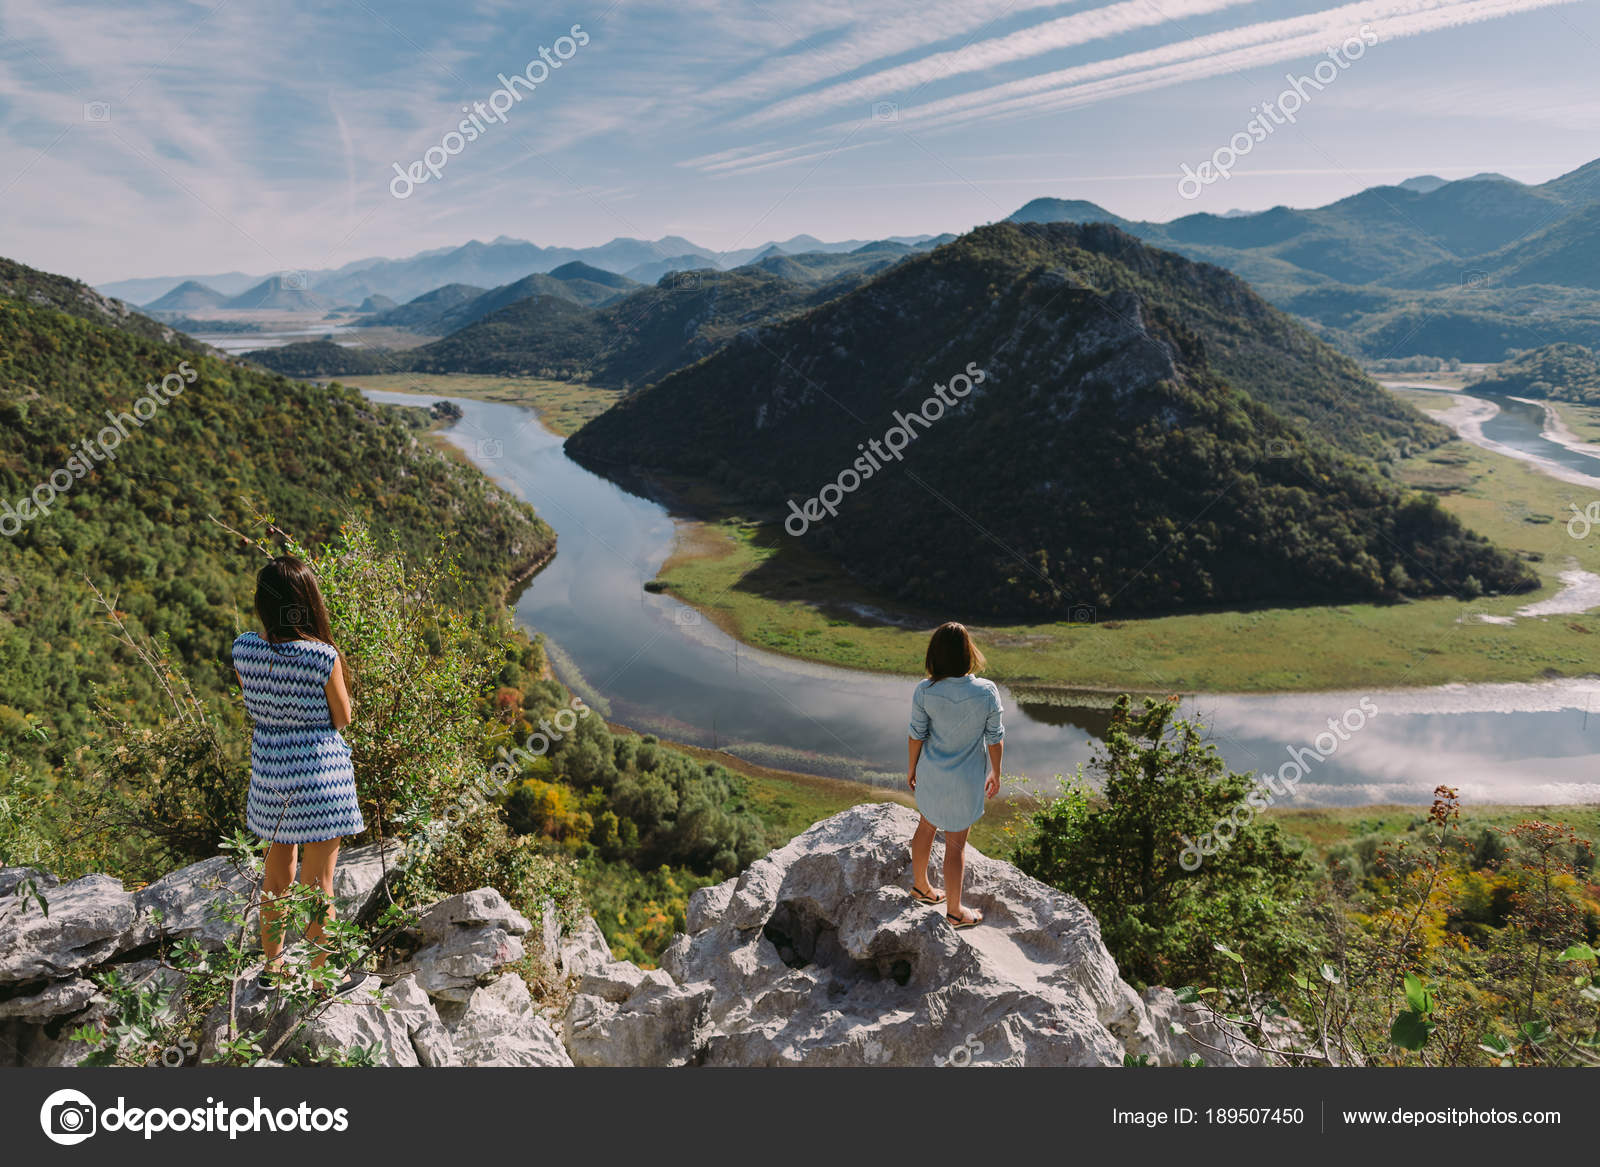 Two Girls Travelling Mountains Sunset Beautiful View — Stock Photo ... ec38615e79ee6